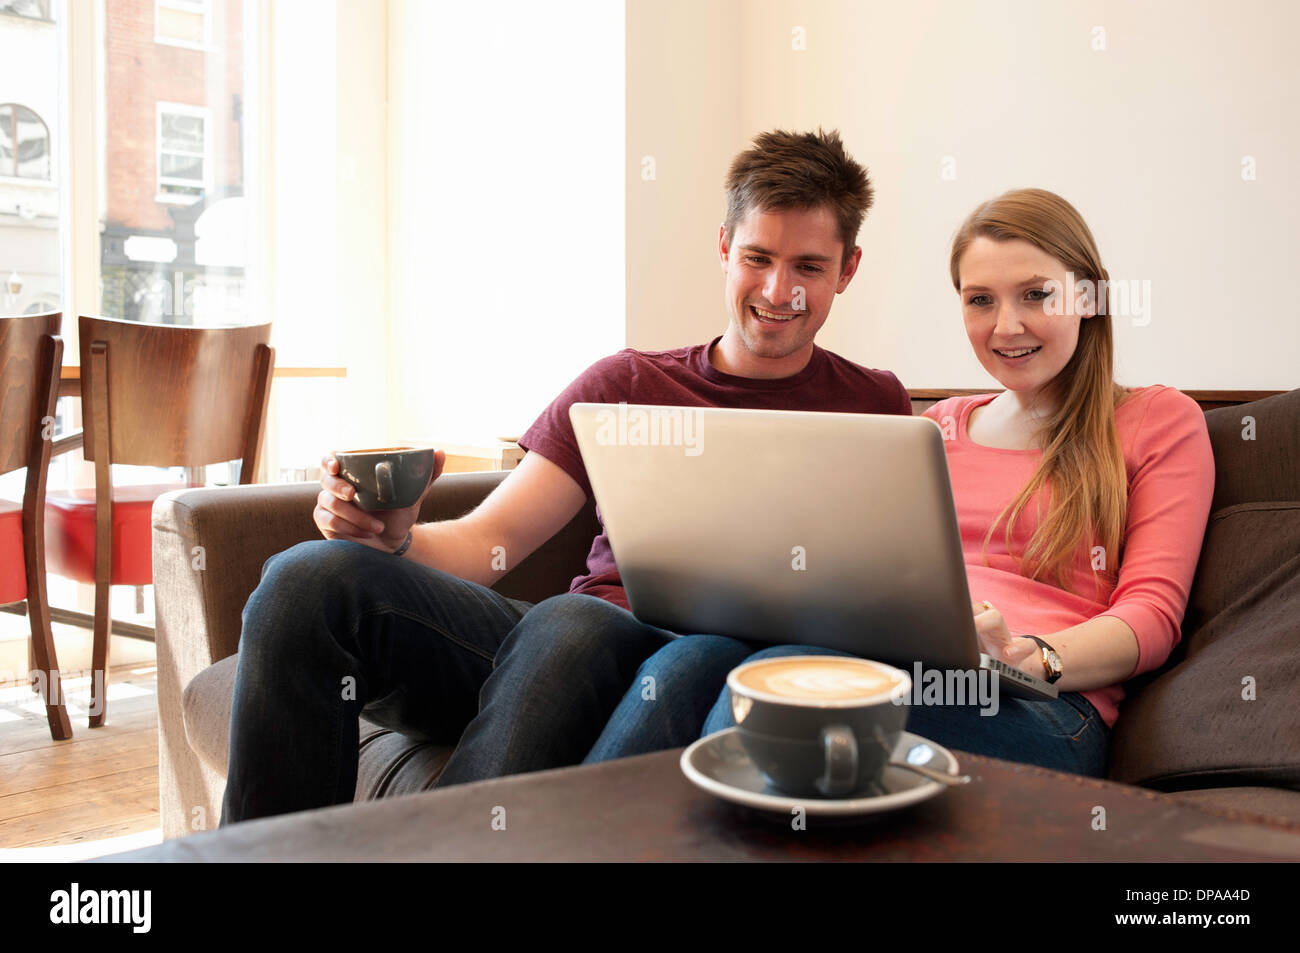 Young couple looking at personal computer in cafe - Stock Image